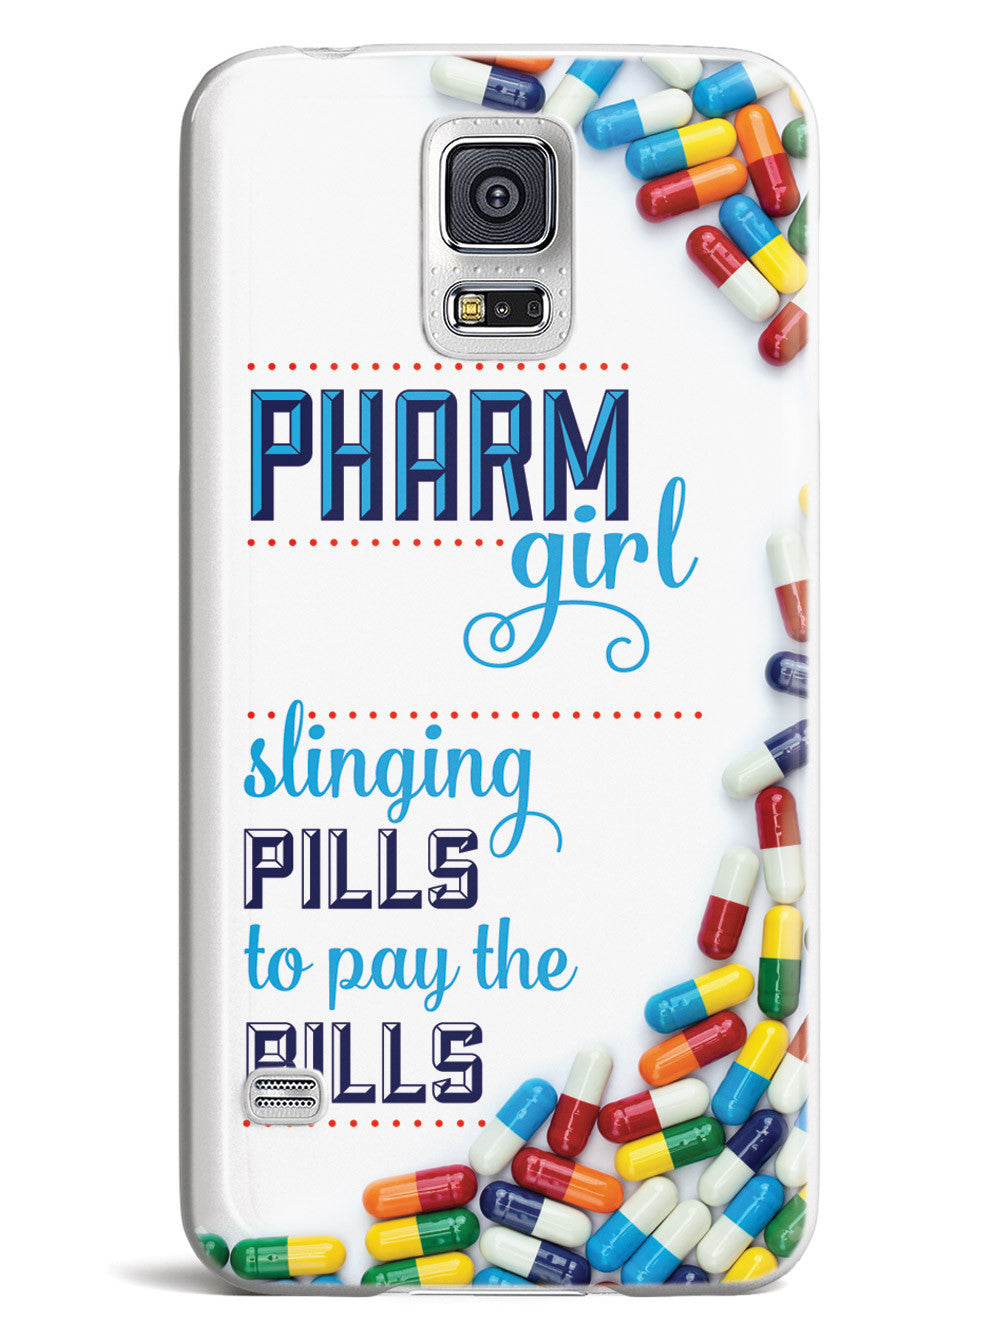 Pharm Girl - Pharmacy Tech Pharmaceuticals Case